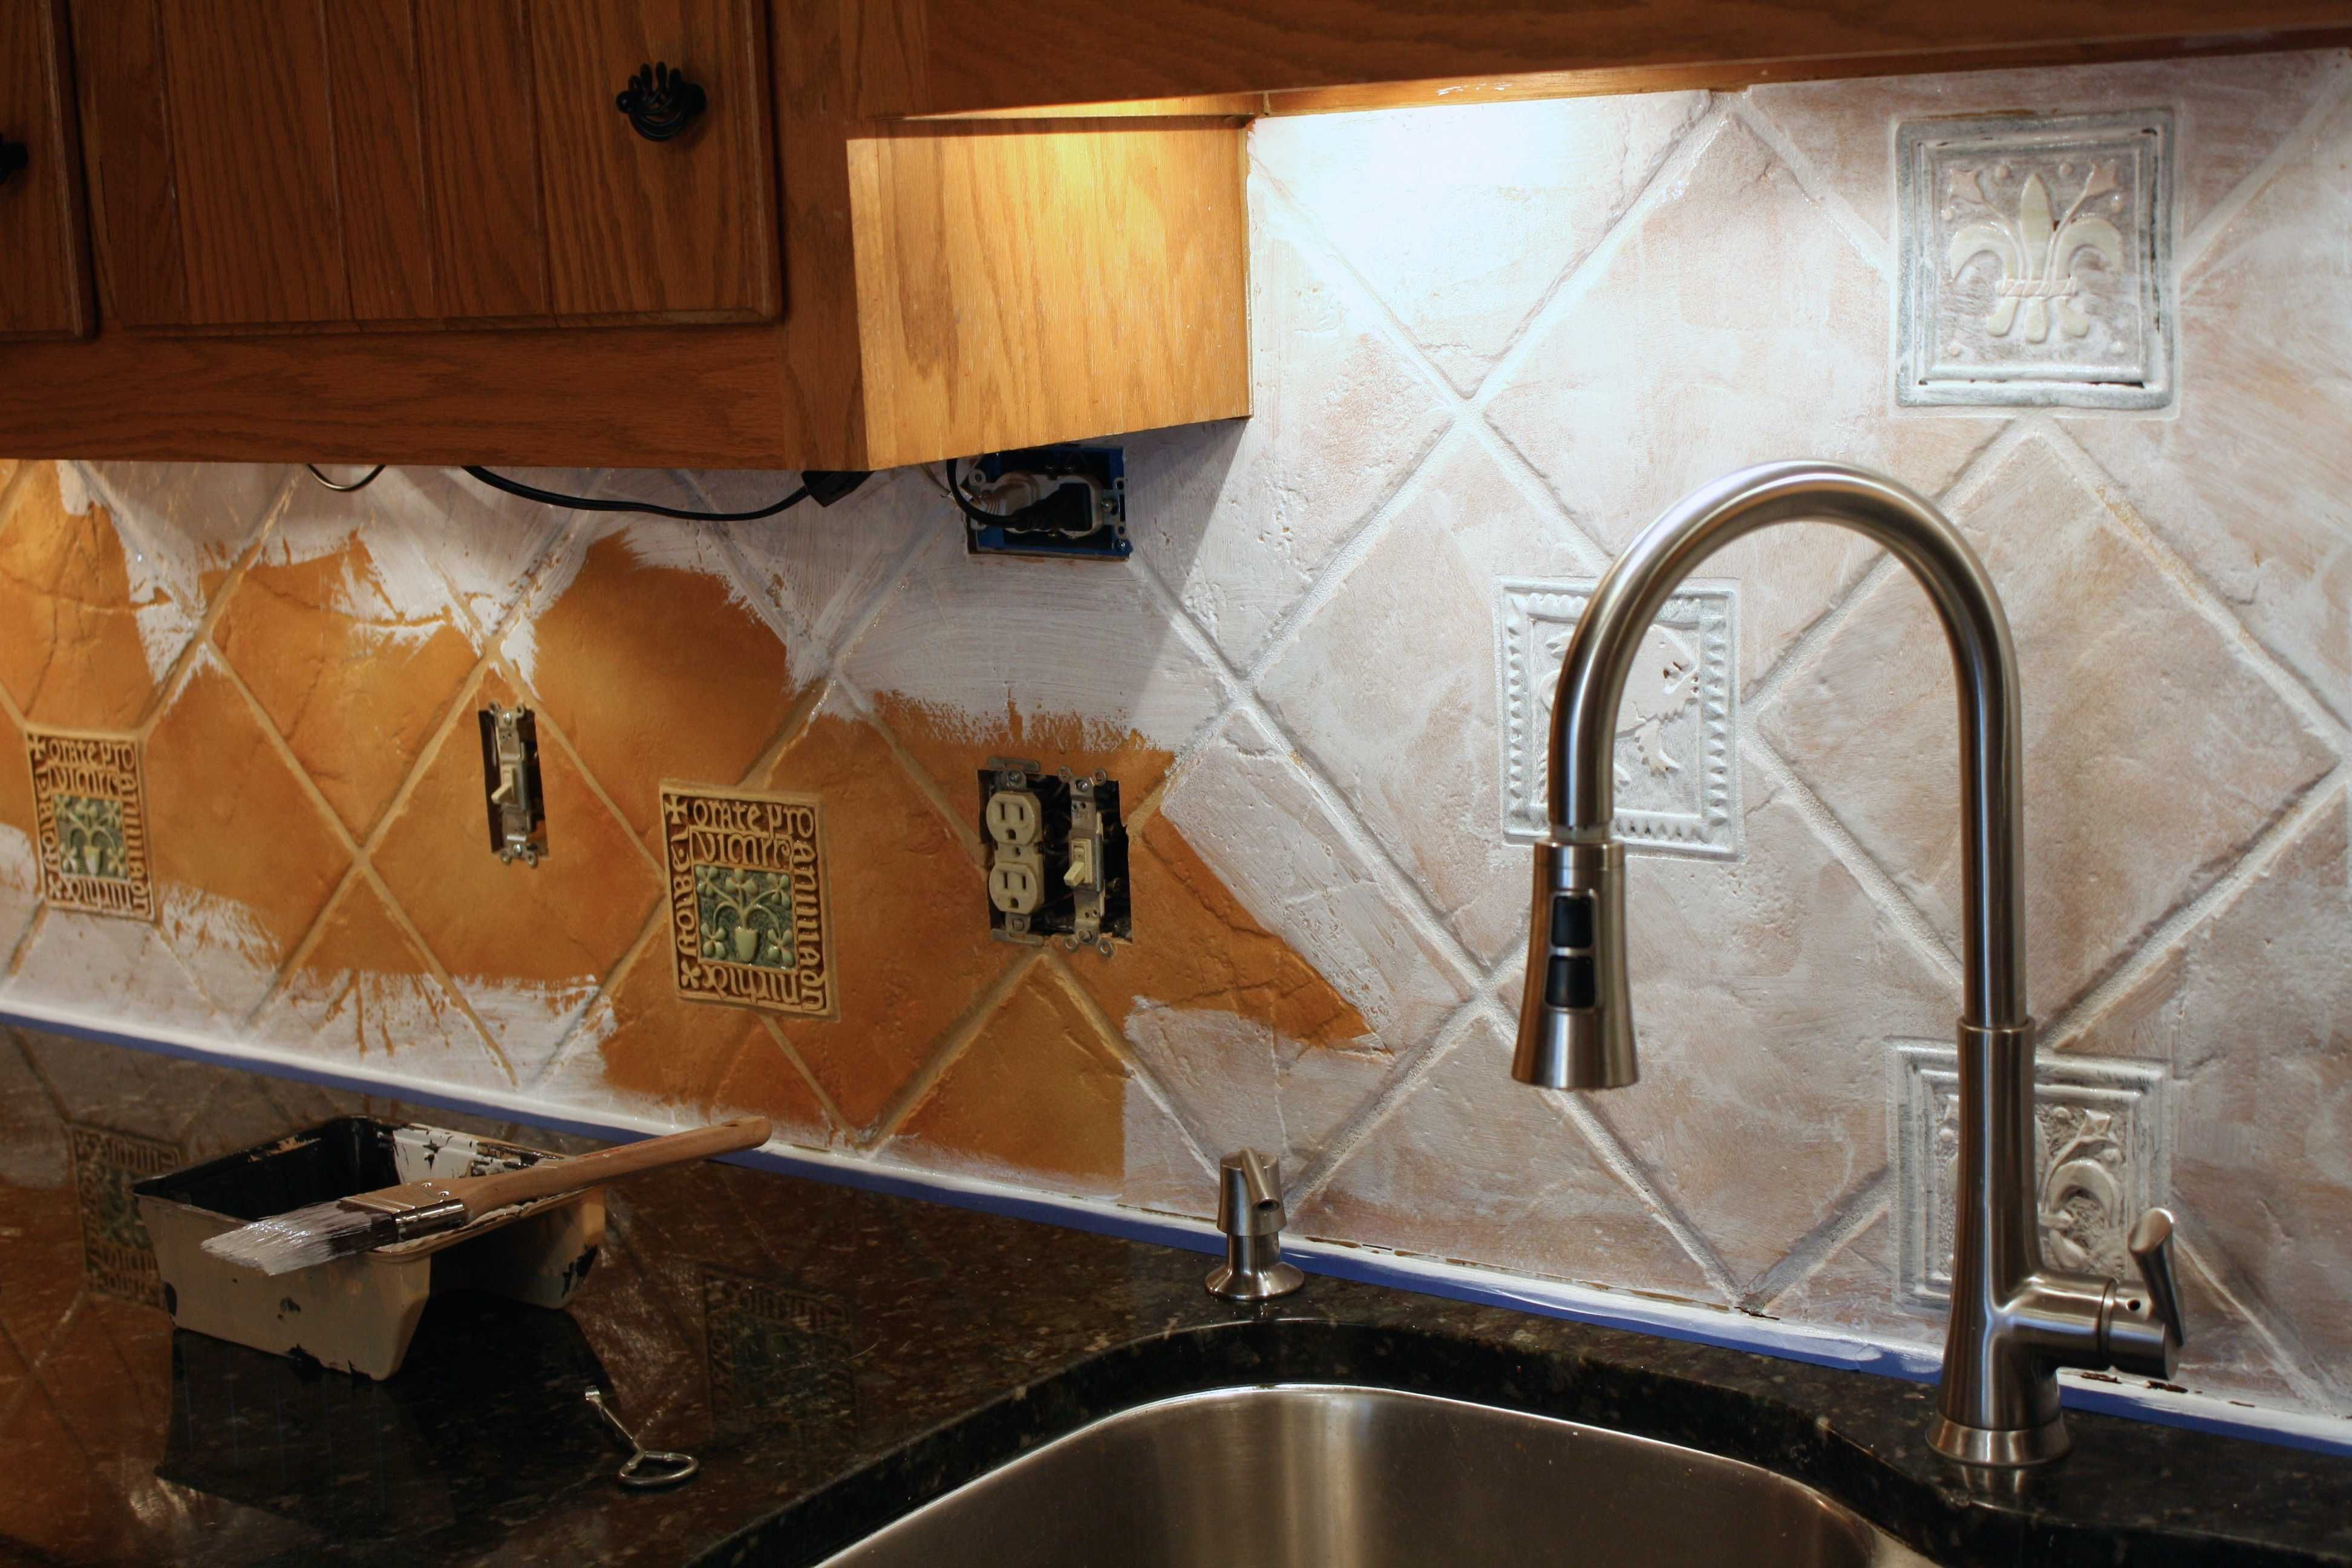 How To Paint A Tile Backsplash: My Budget Solution ...